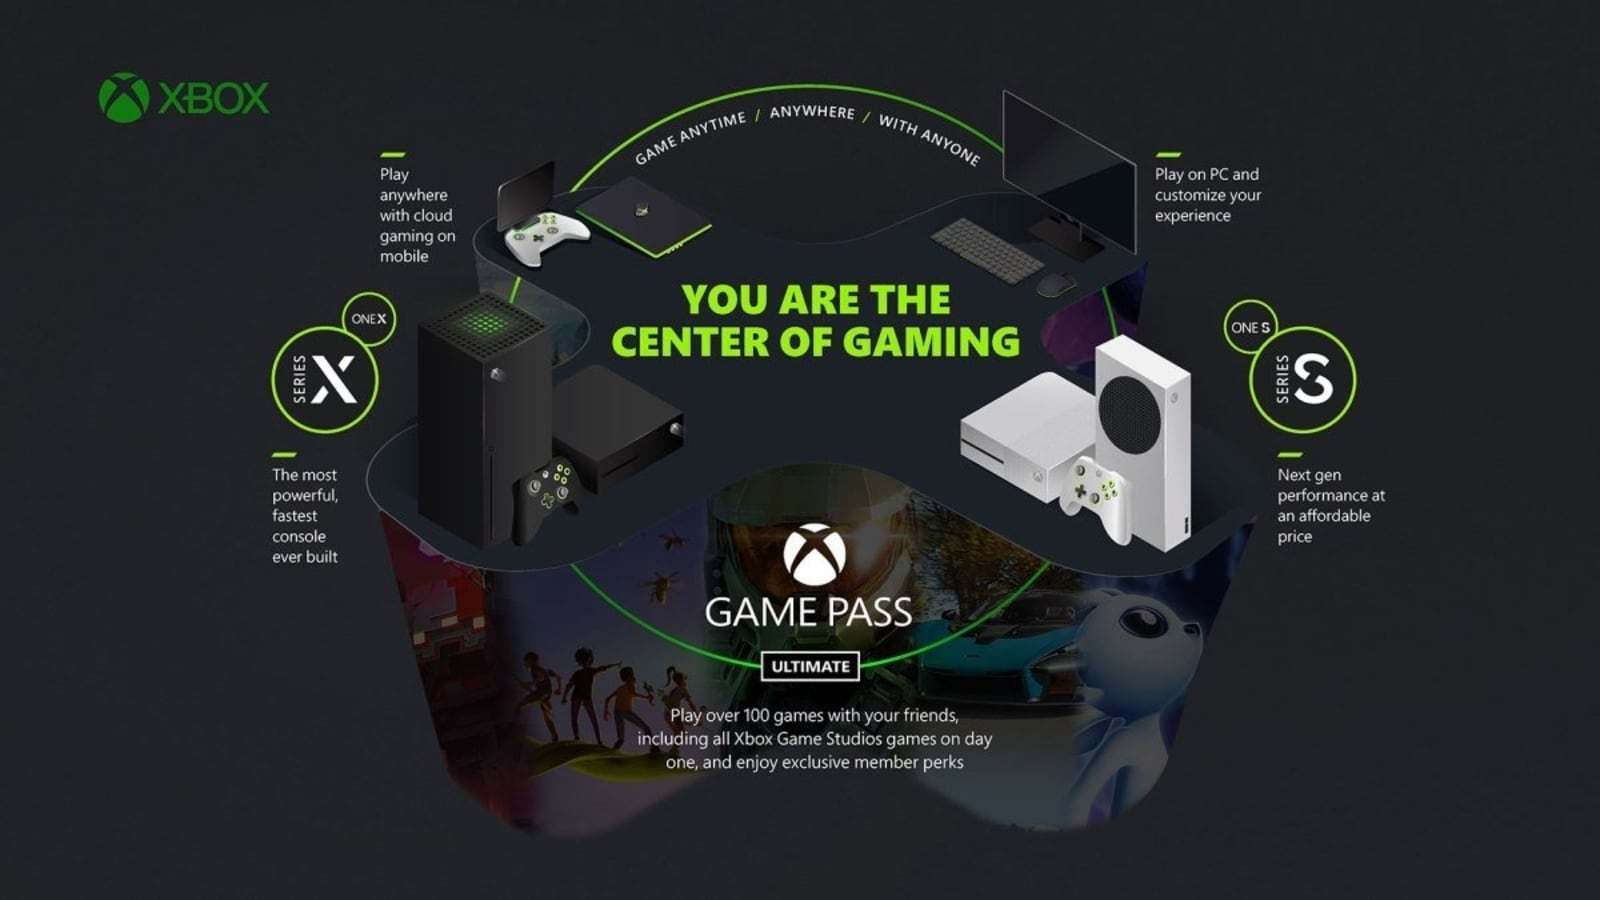 It's working on devices that play Xbox games, without having to wait for consoles